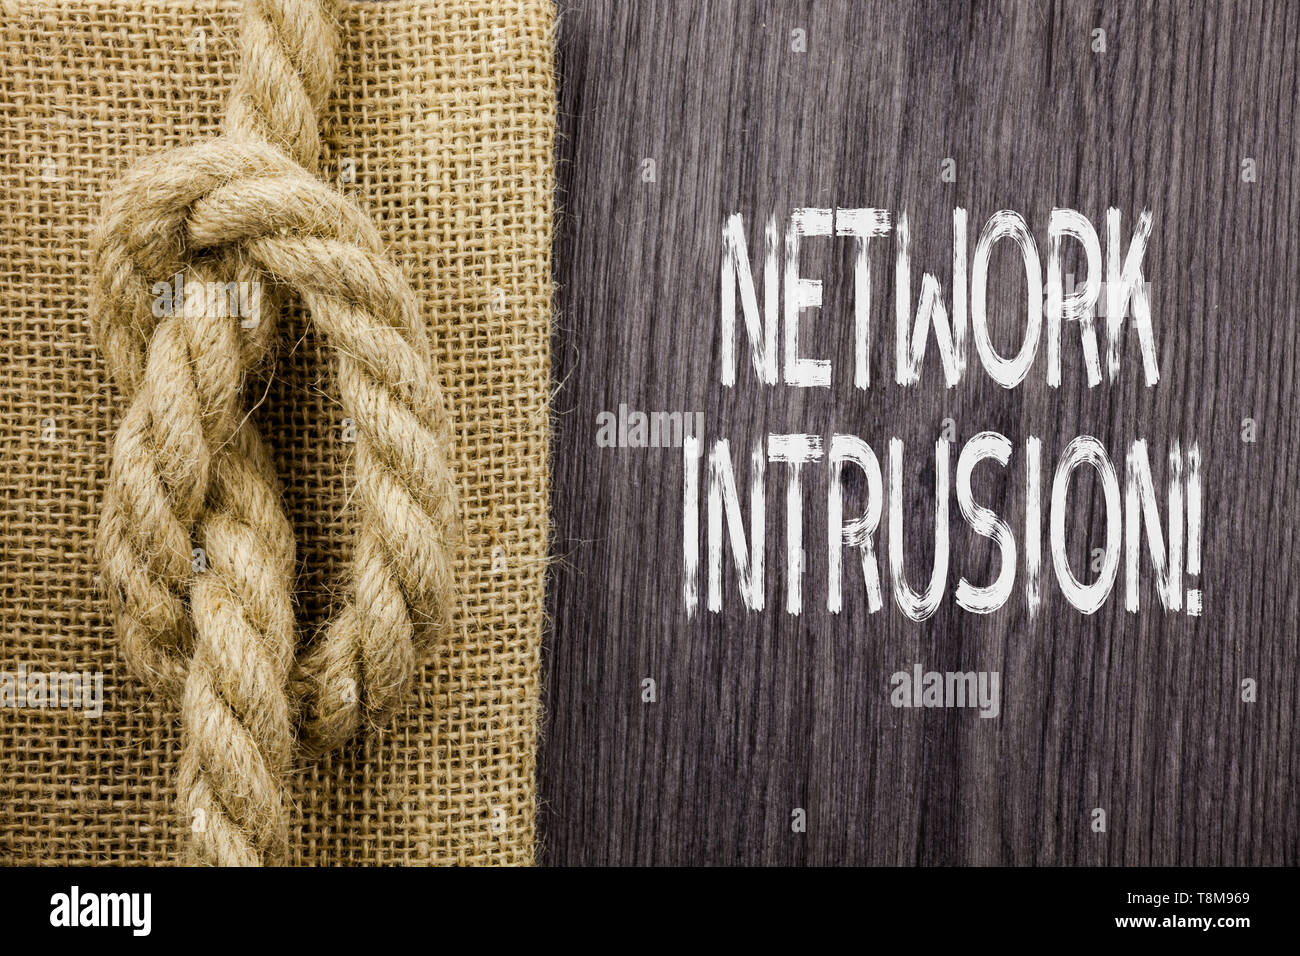 Text sign showing Network Intrusion. Business photo showcasing device or software application that monitors a network - Stock Image